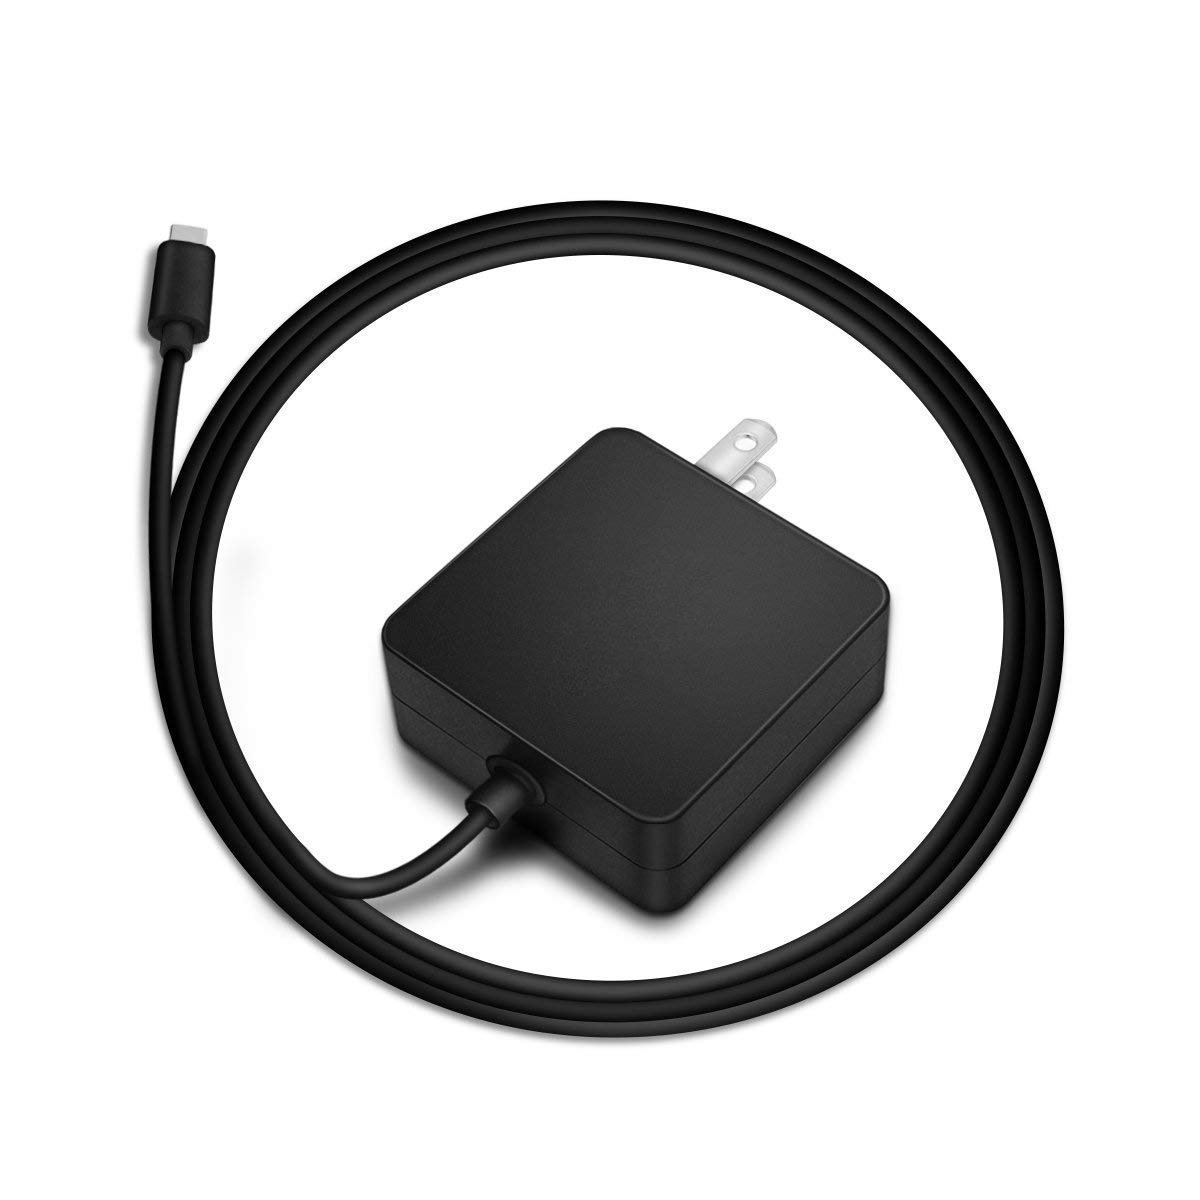 Amazon.com: UL Listed USB-C AC Charger Fit for Lenovo ...